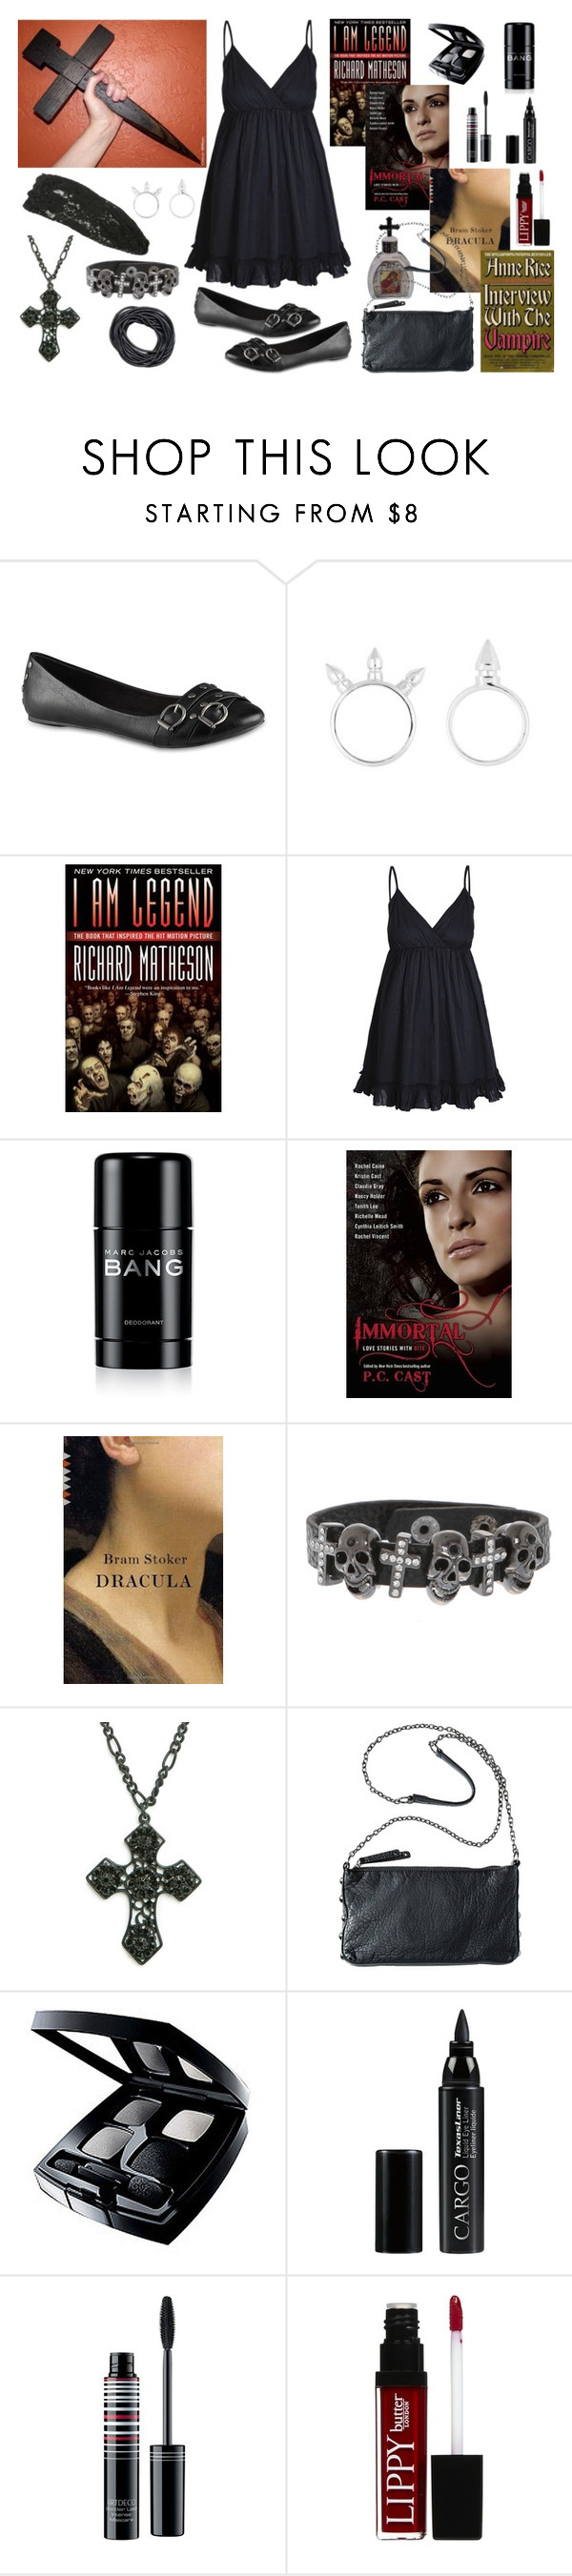 """Slayer Girl"" by aprilplayssp ❤ liked on Polyvore featuring Call it SPRING, Raxevsky, Marc Jacobs, MANGO, Chanel, CARGO, ArtDeco, Butter London and Wet Seal"